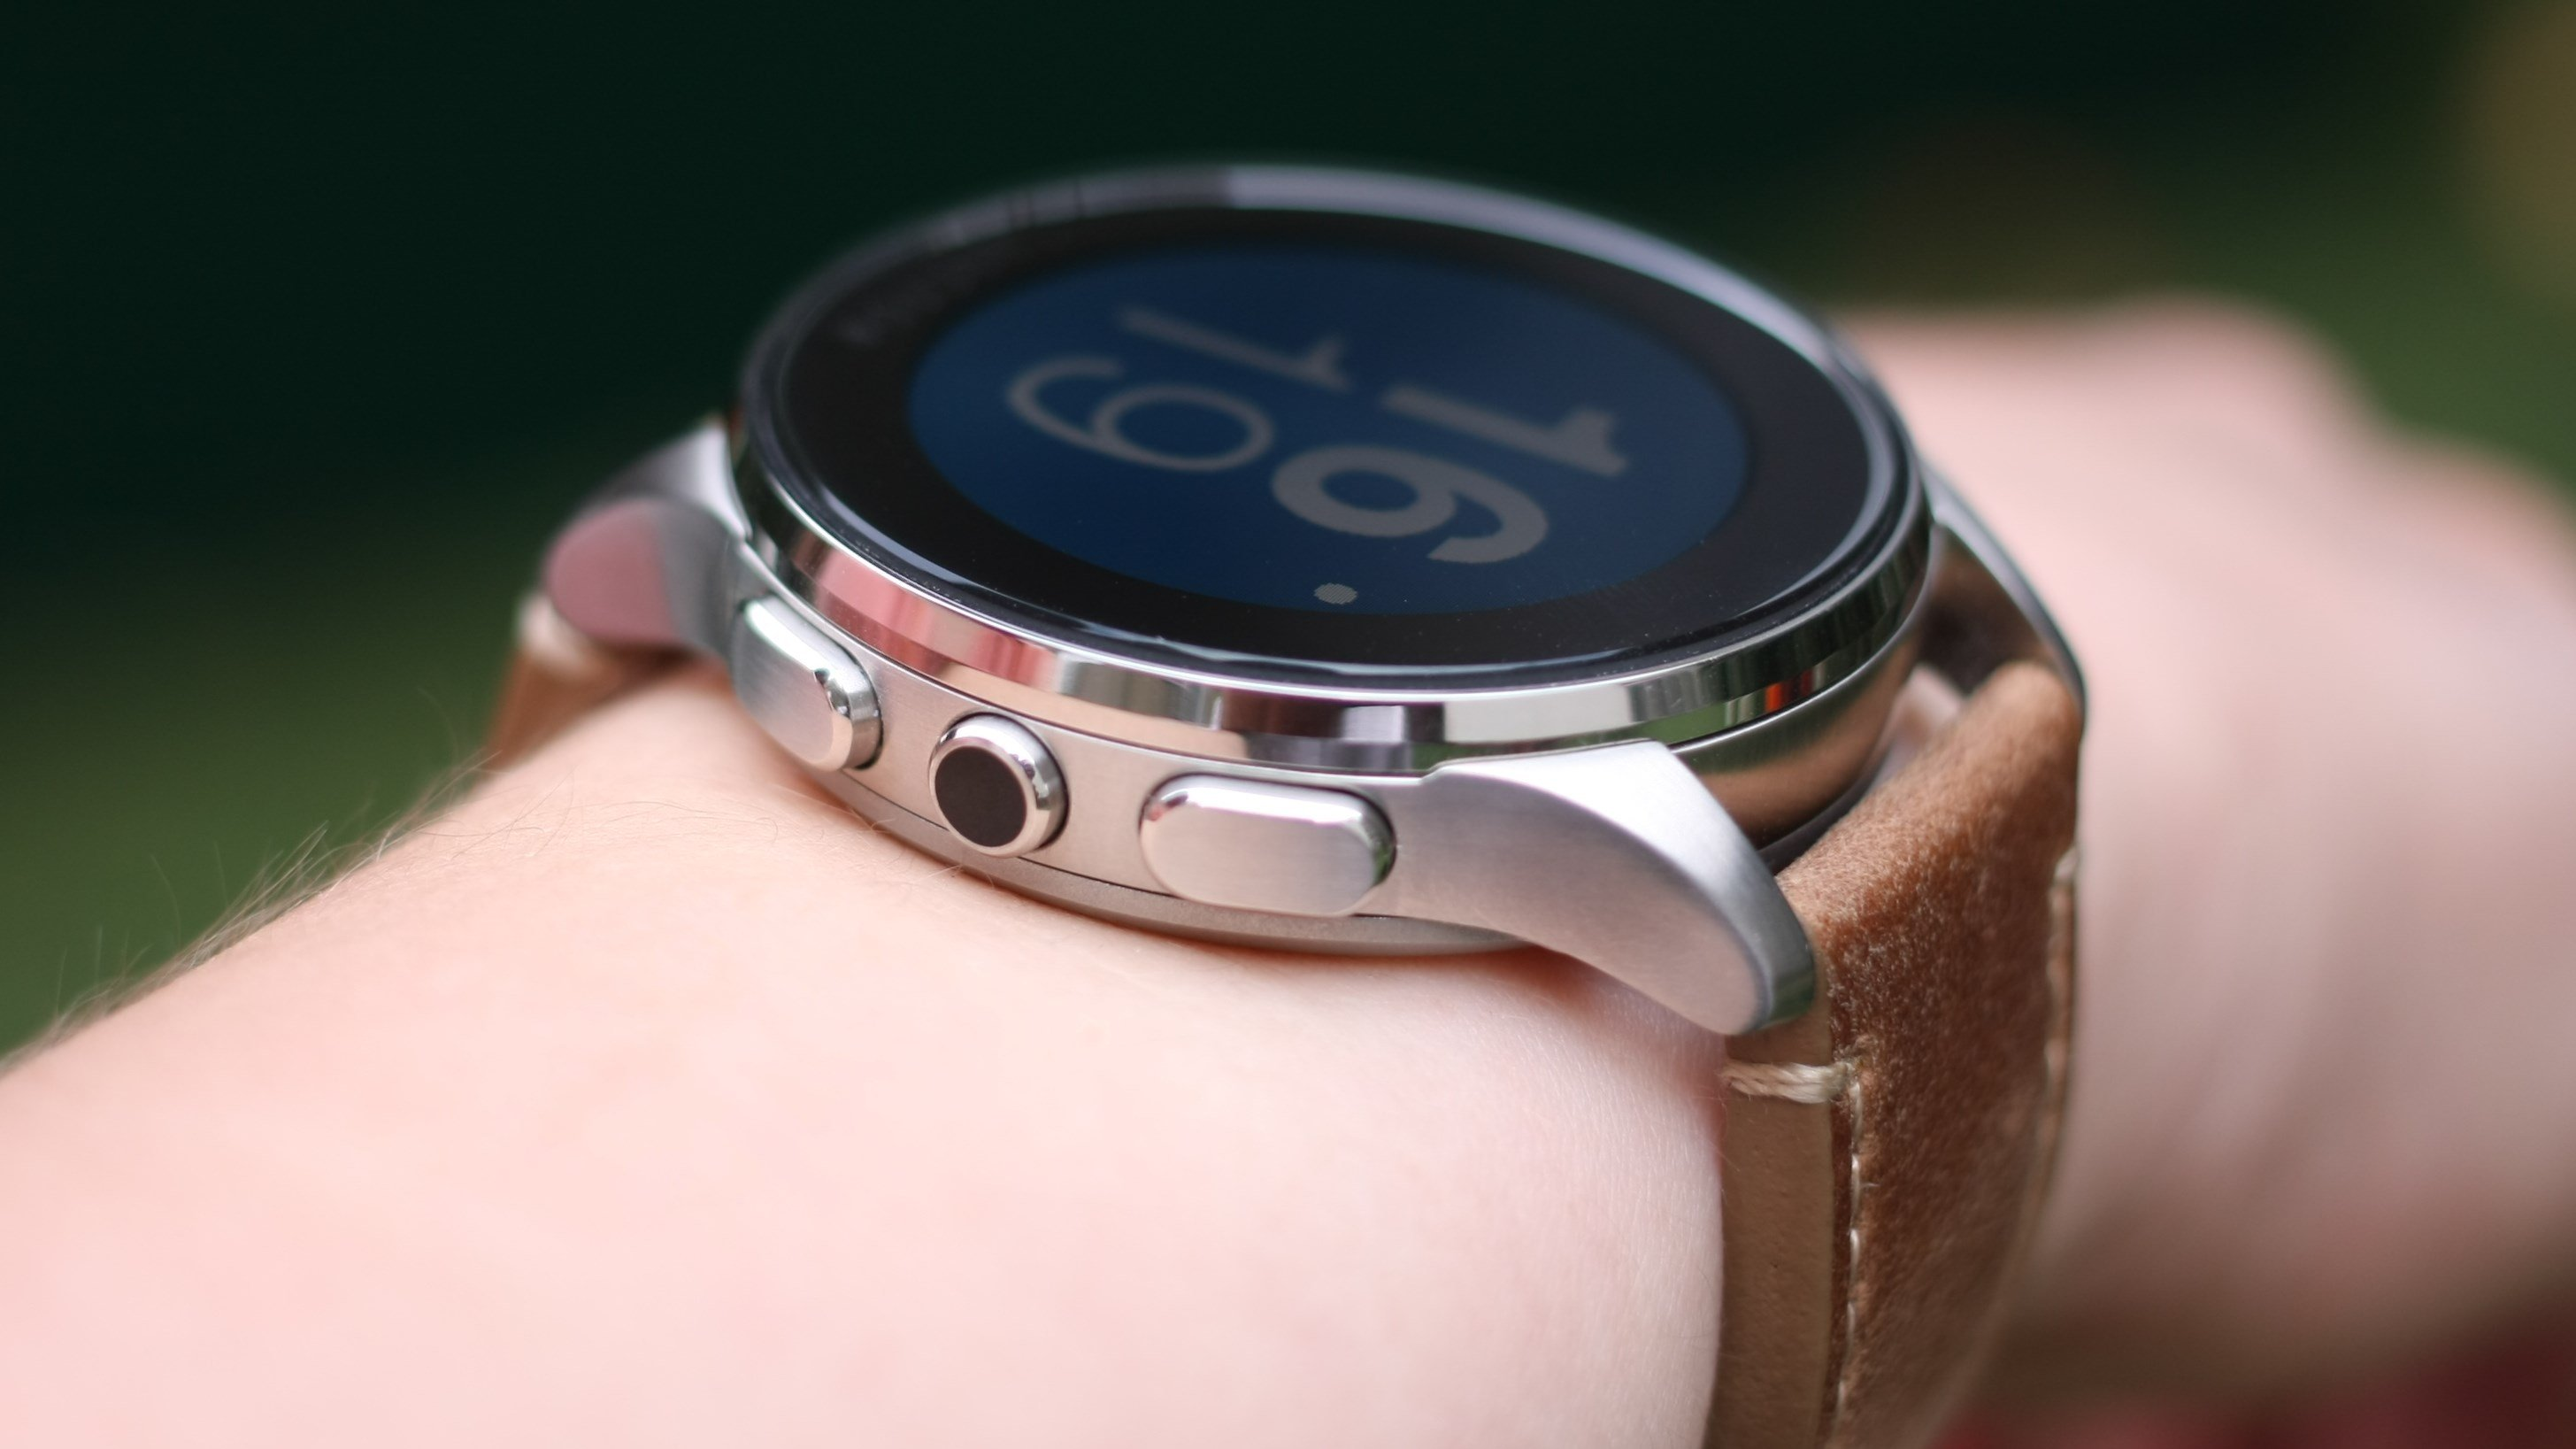 Sony Smartwatch 3 Texting